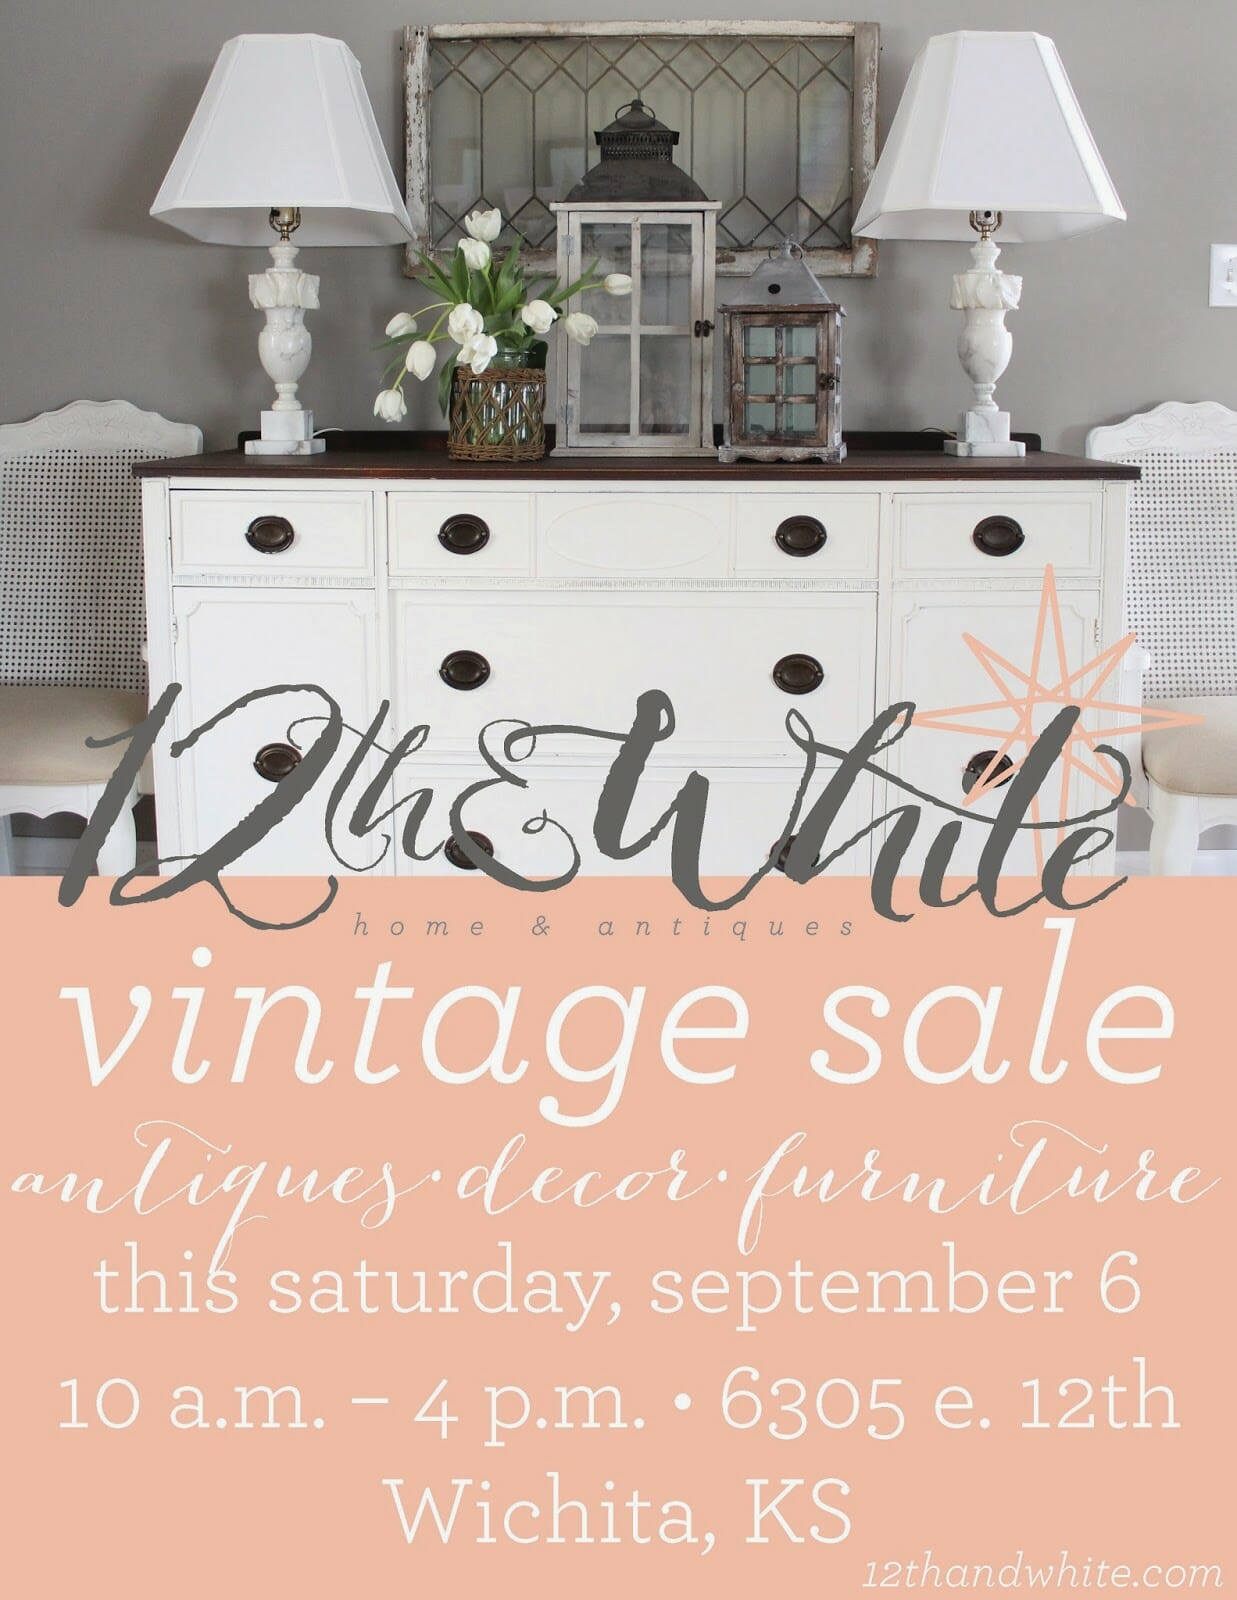 12th and White Sale {Where, When, and the Goods}